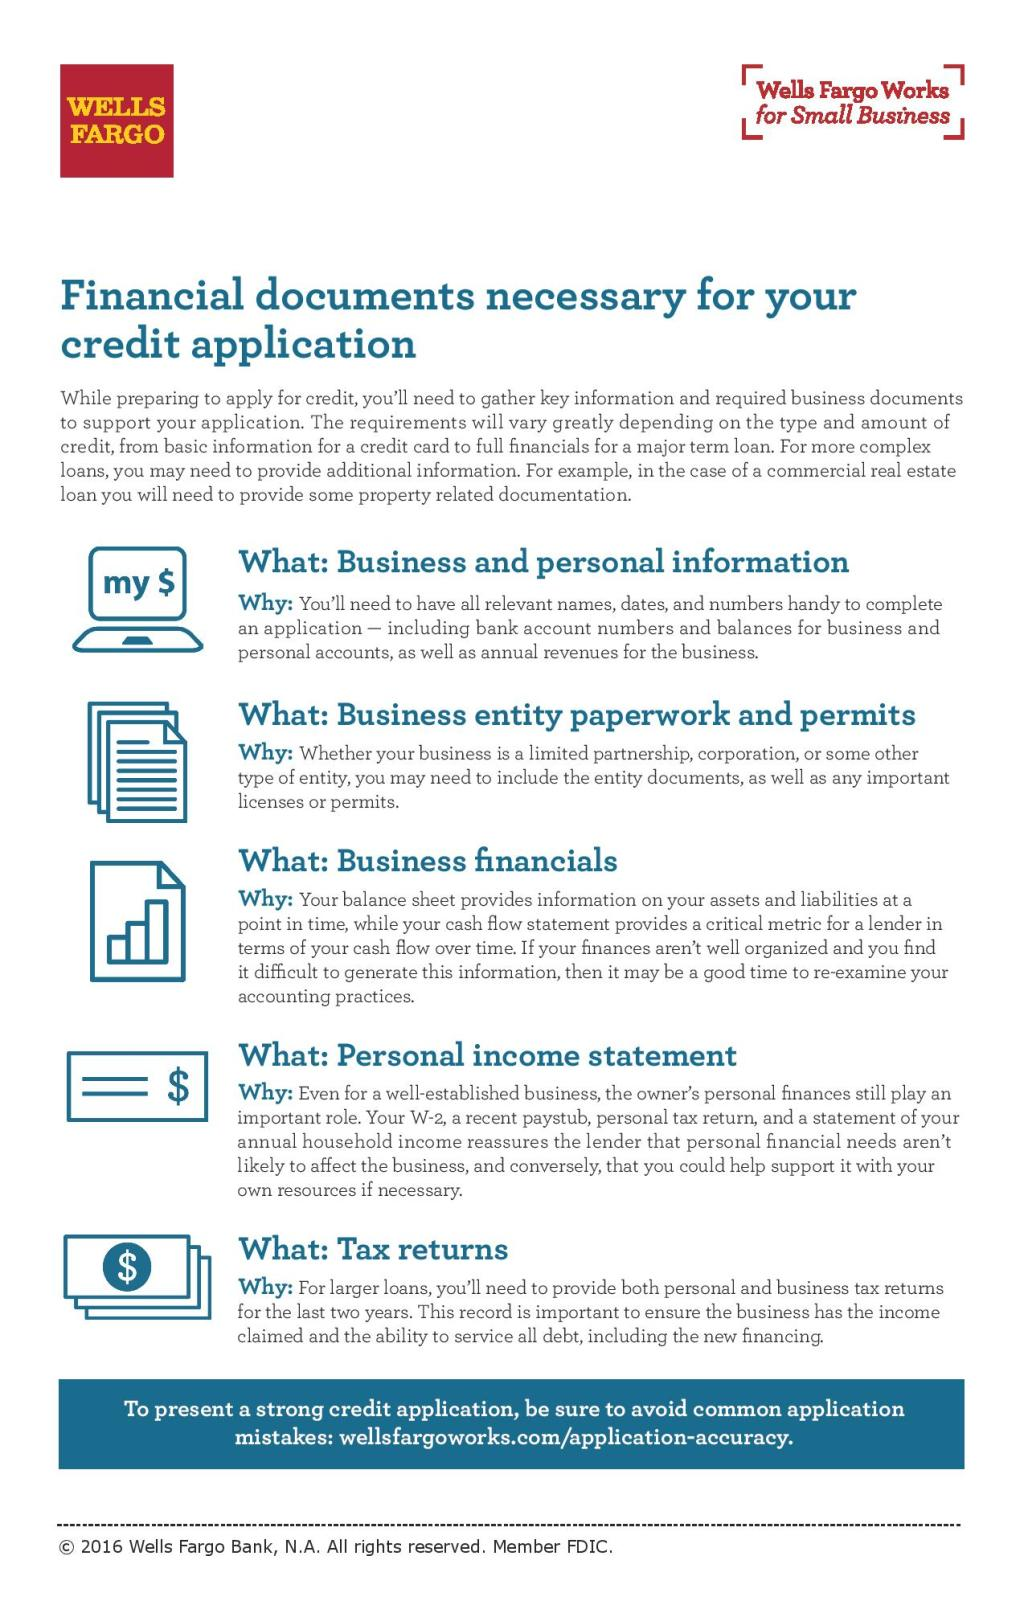 Business Financial Documents For The Credit Application